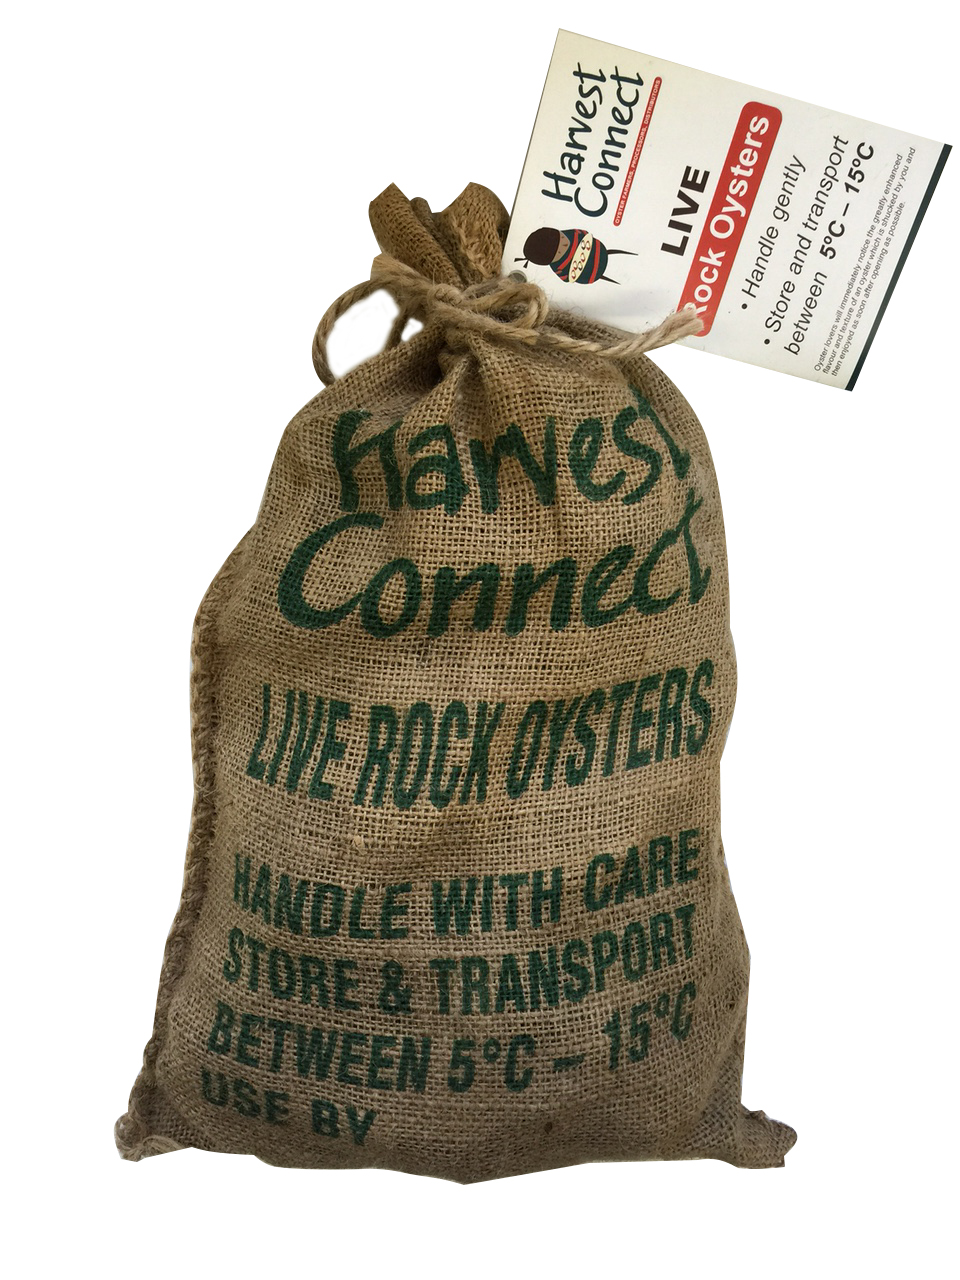 Live Rock Oysters – Half Sack